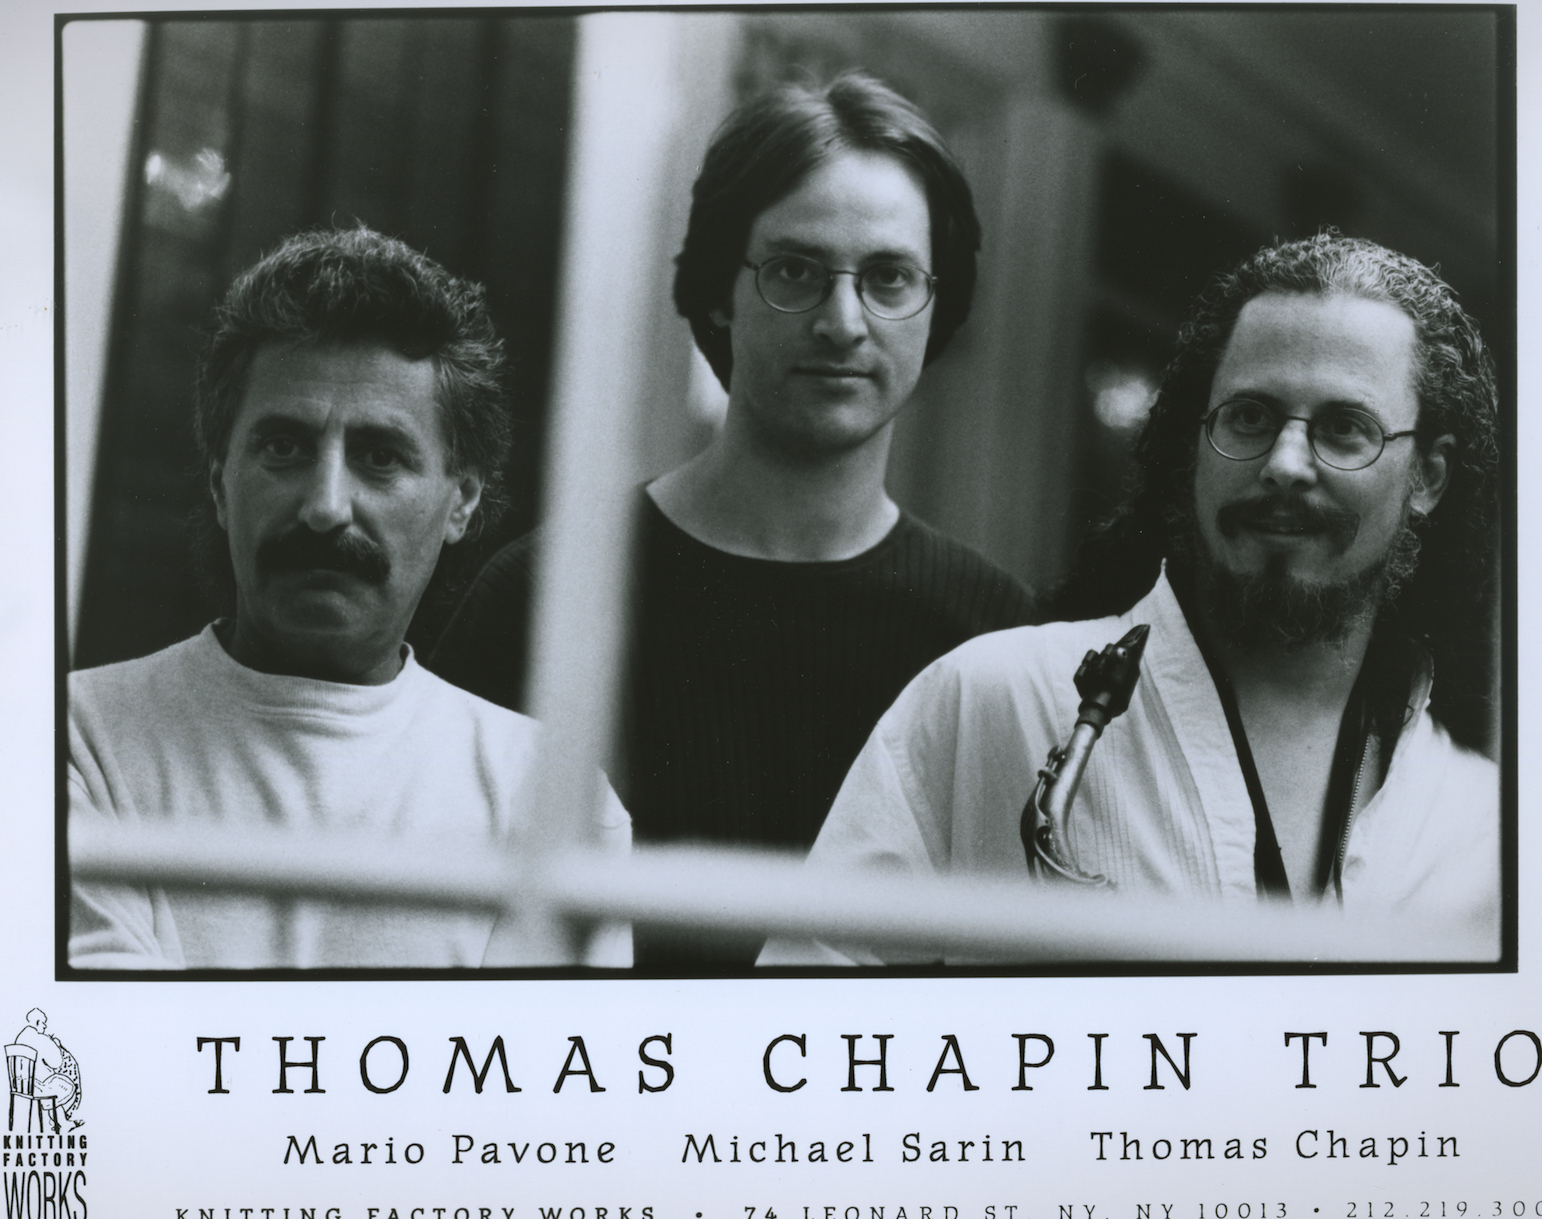 Thomas Chapin Trio Knitting  F copy 2